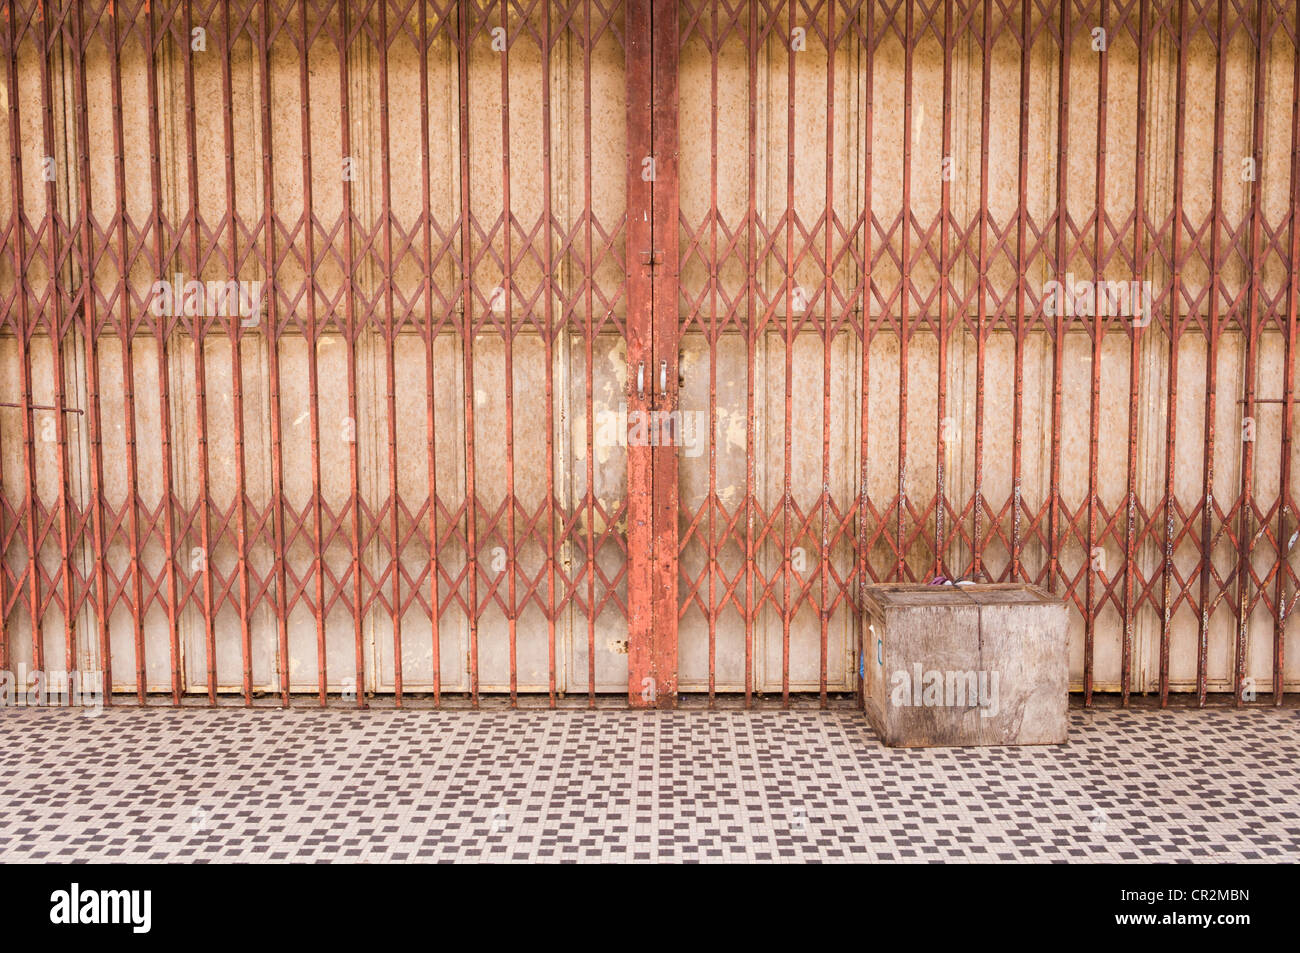 an old fashioned shop gate for retro or nostalgic backgrounds. Photo is taken in Malaysia, Asia. Stock Foto